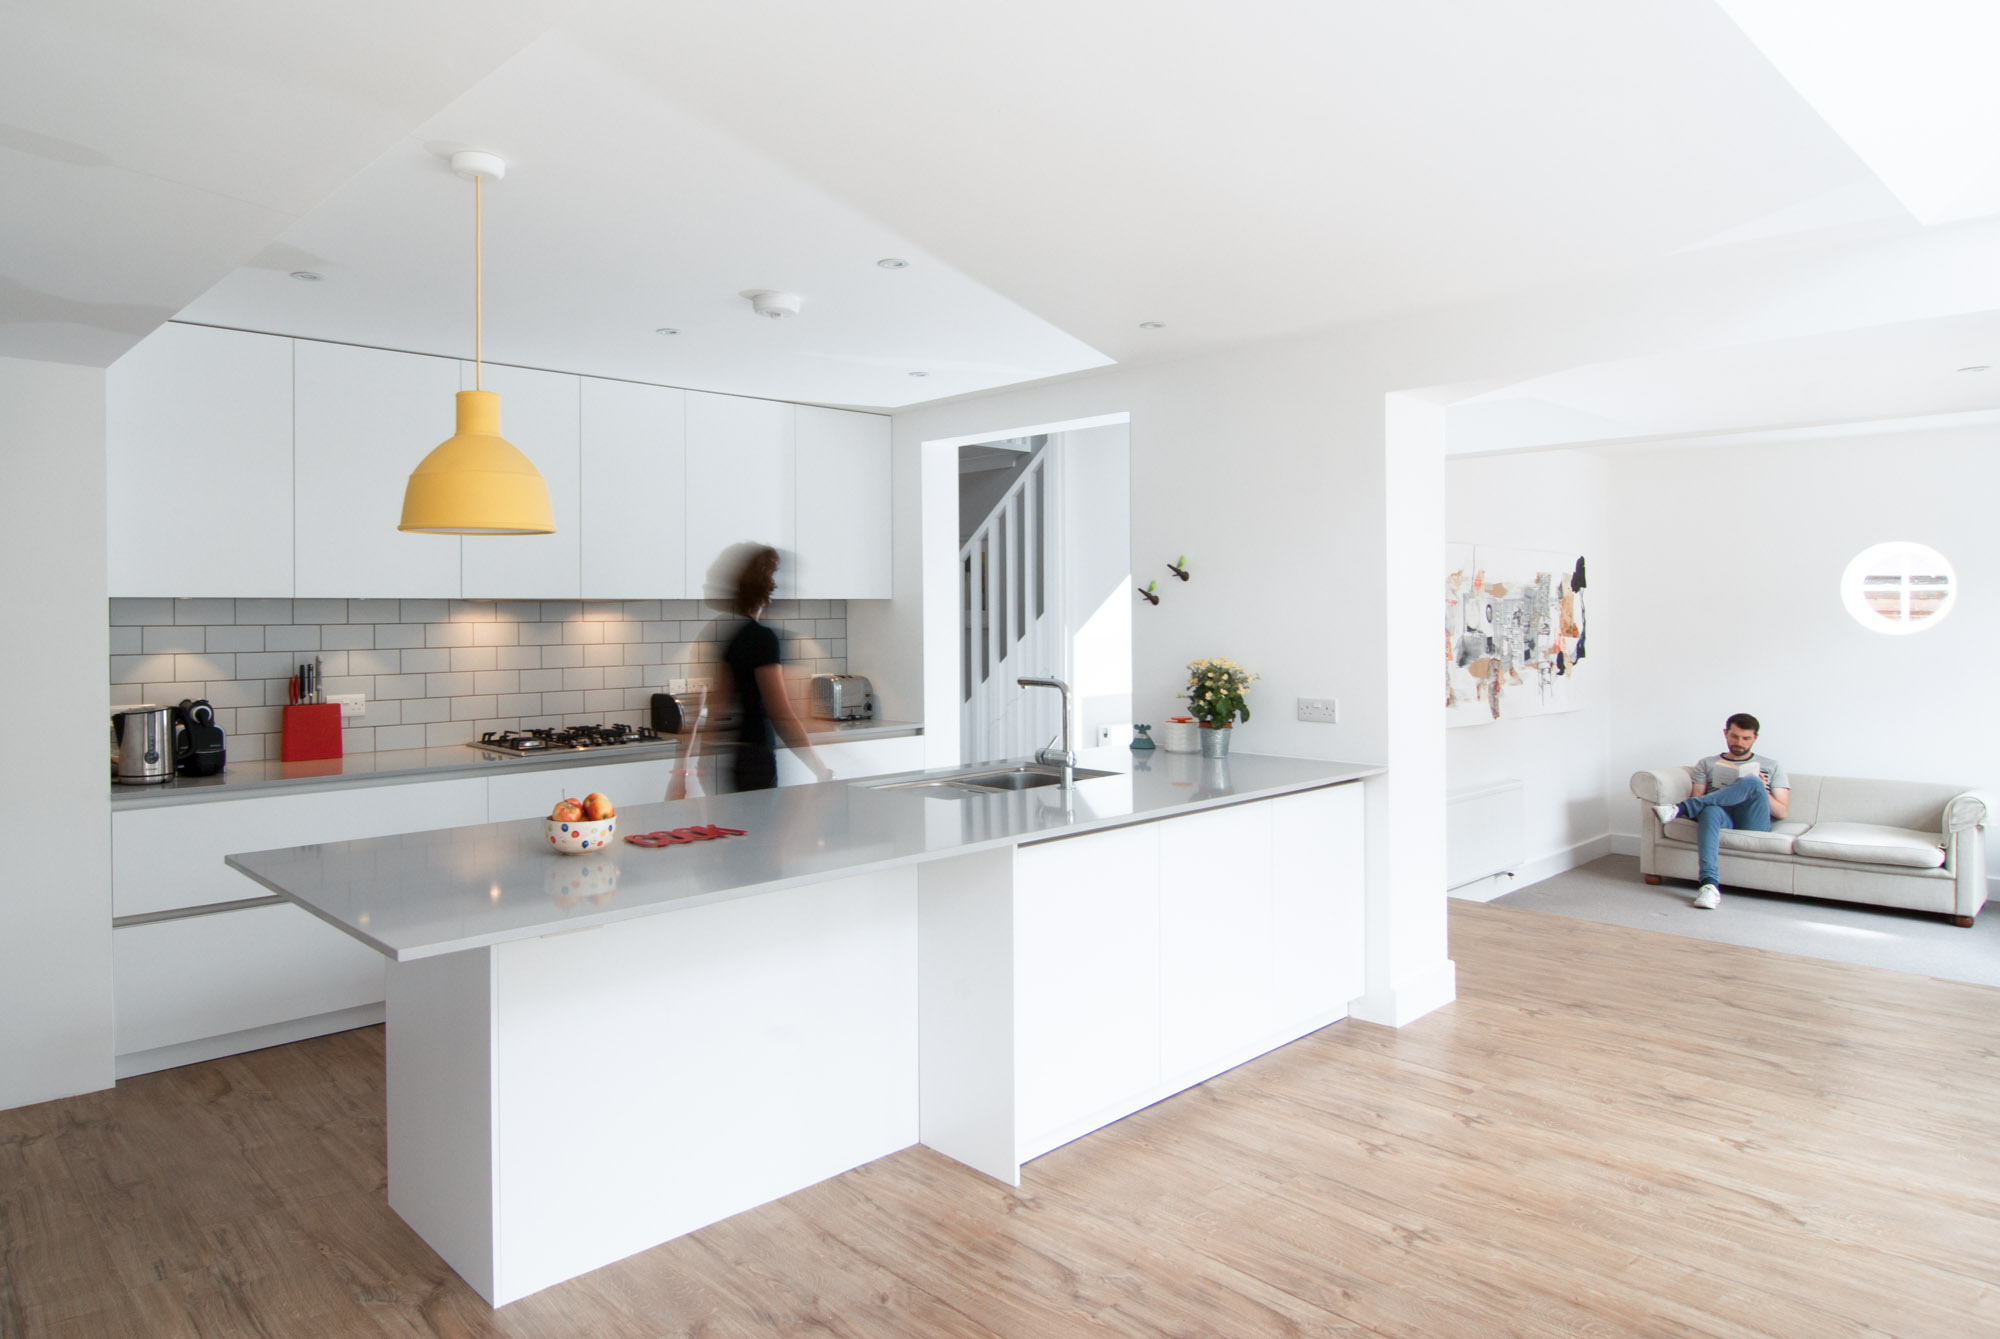 Perspective view of the renovated kitchen with a very minimal colour palette.